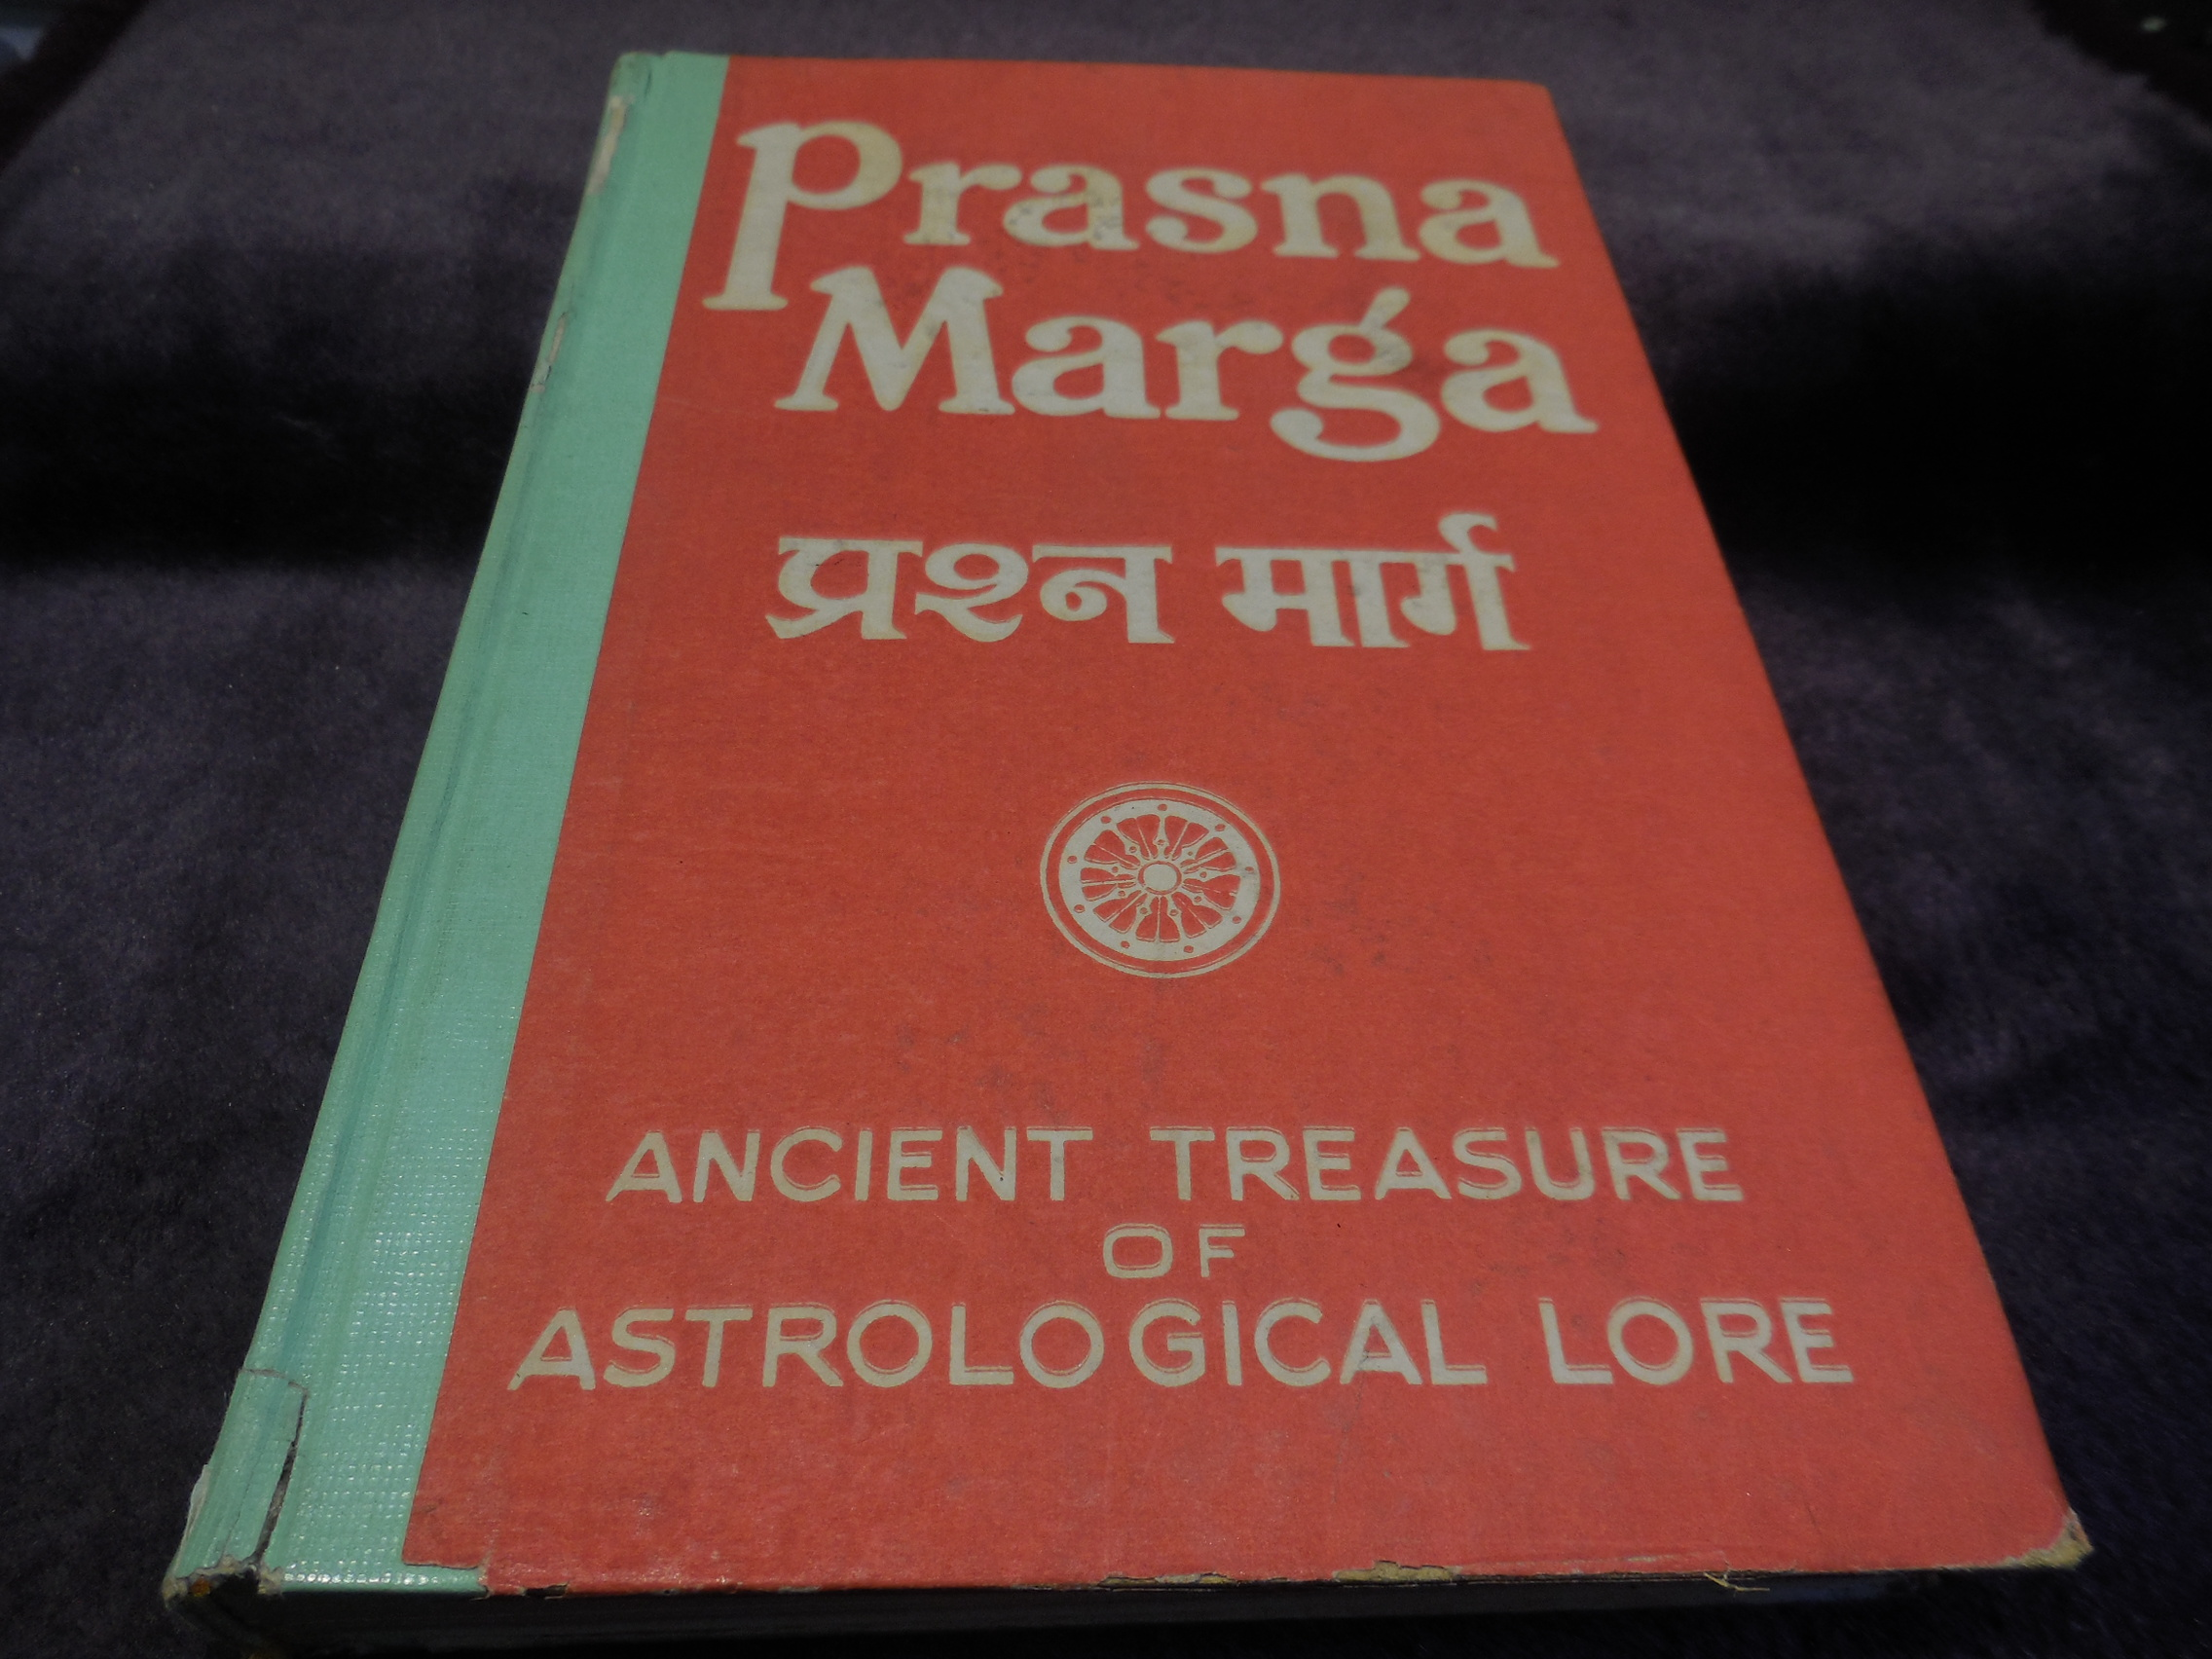 Image for Prasna Marga, Part 1: Ancient Treasure of Astrological Lore